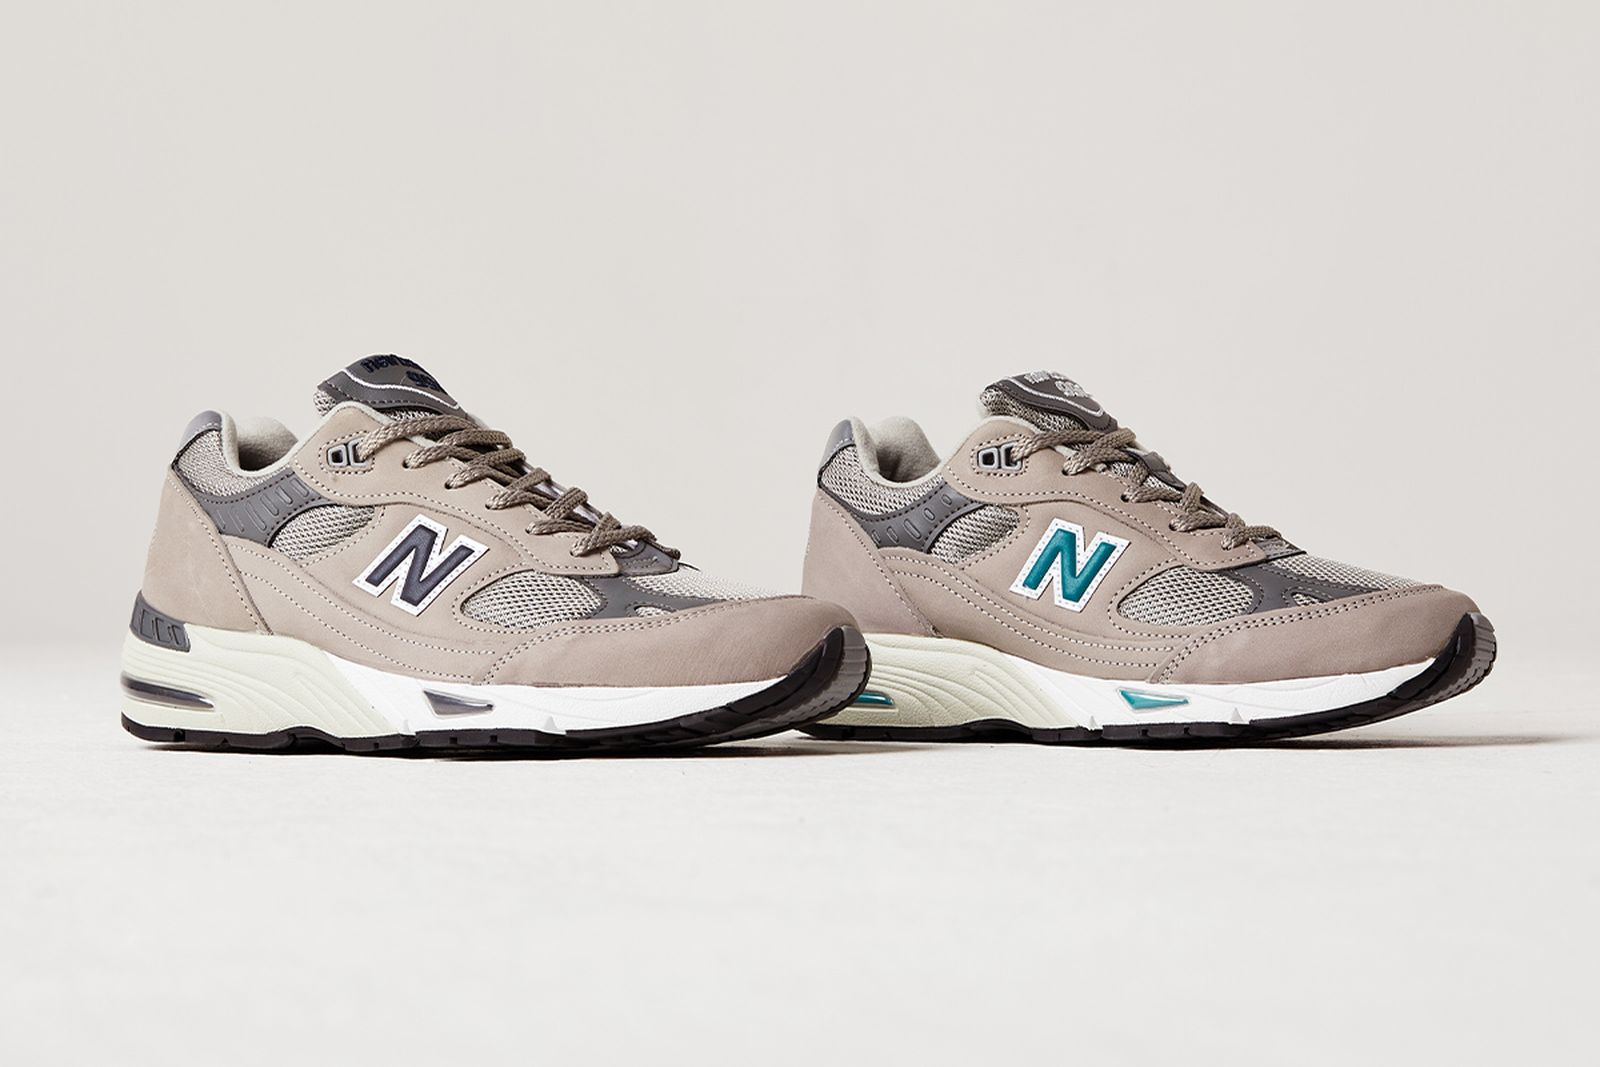 new-balance-991-anniversary-pack-release-date-price-02